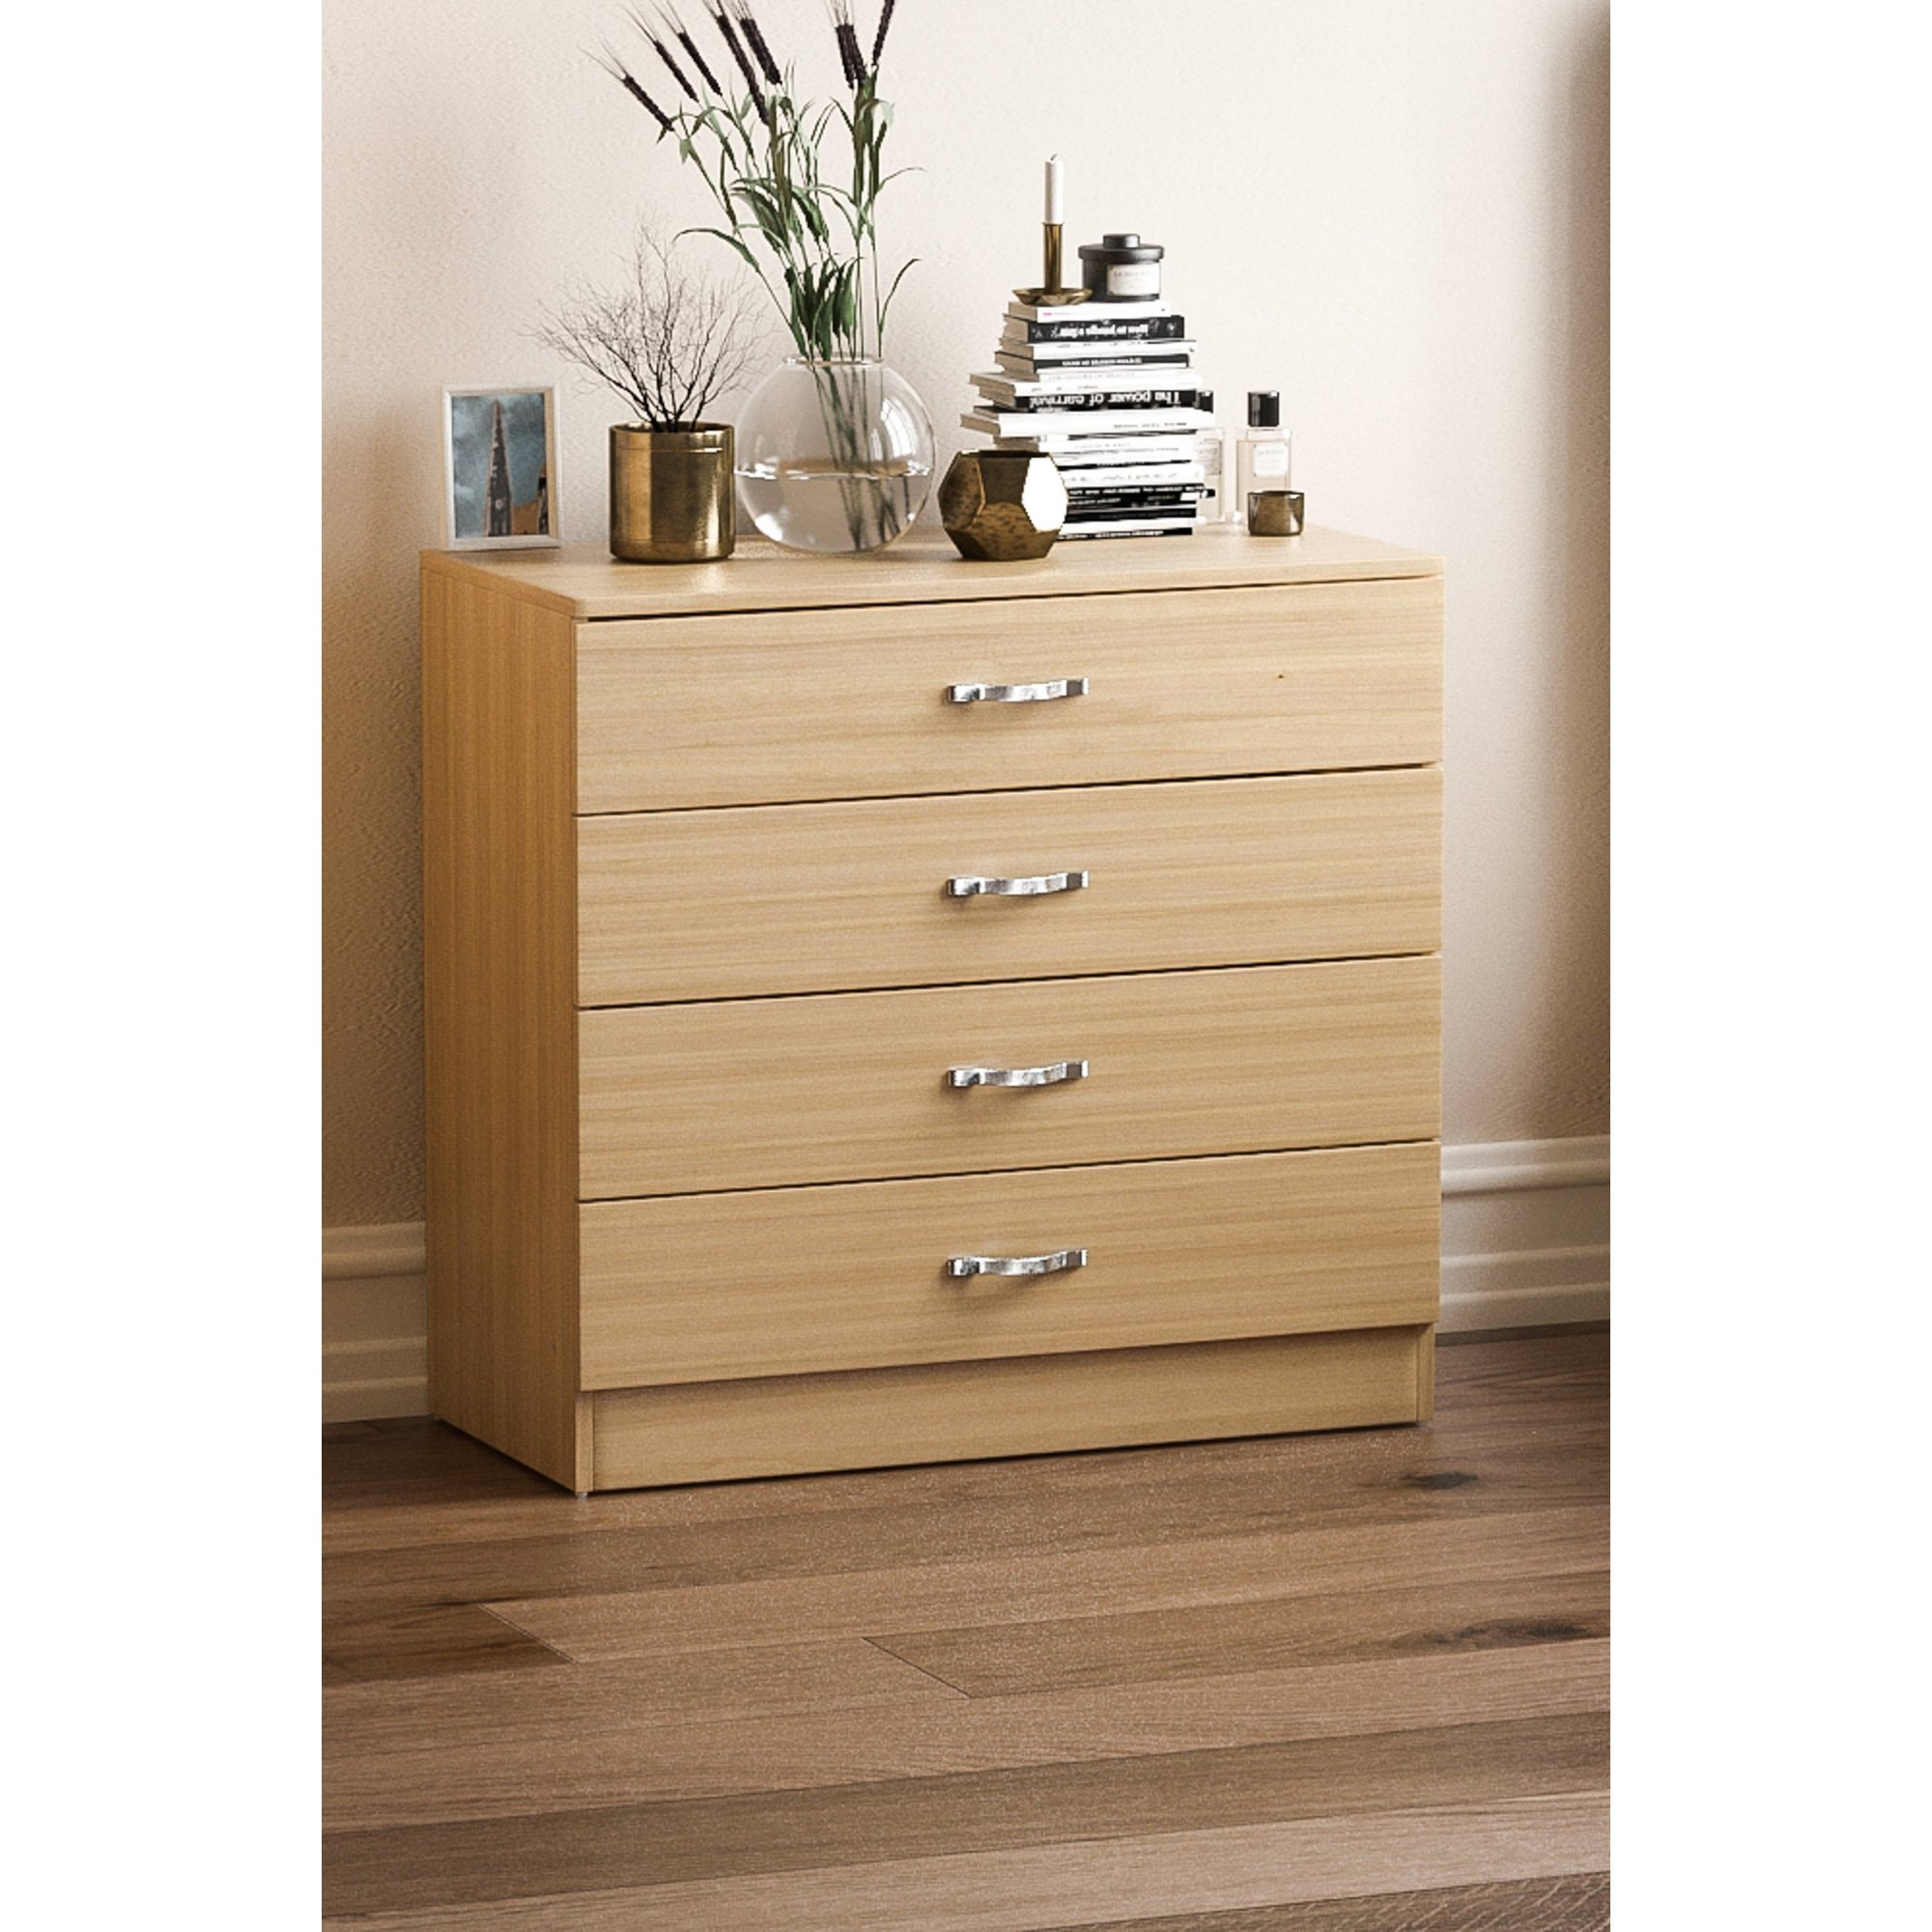 Image of 4 Drawer Chest of Drawers